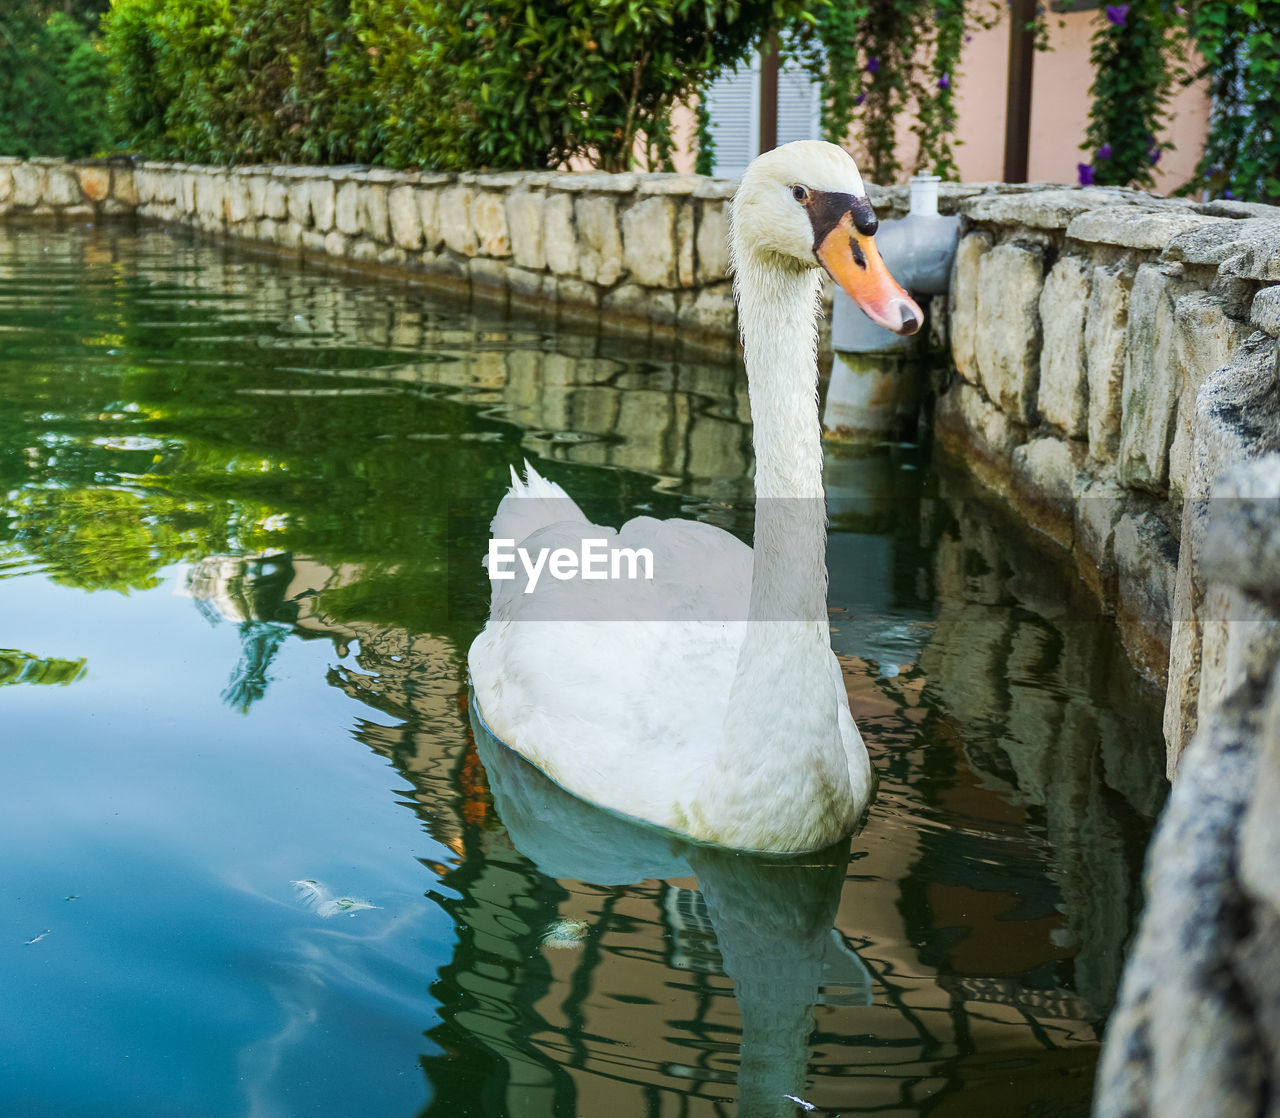 water, animal themes, animal wildlife, animals in the wild, reflection, bird, lake, animal, vertebrate, day, waterfront, nature, swan, swimming, one animal, water bird, white color, outdoors, one person